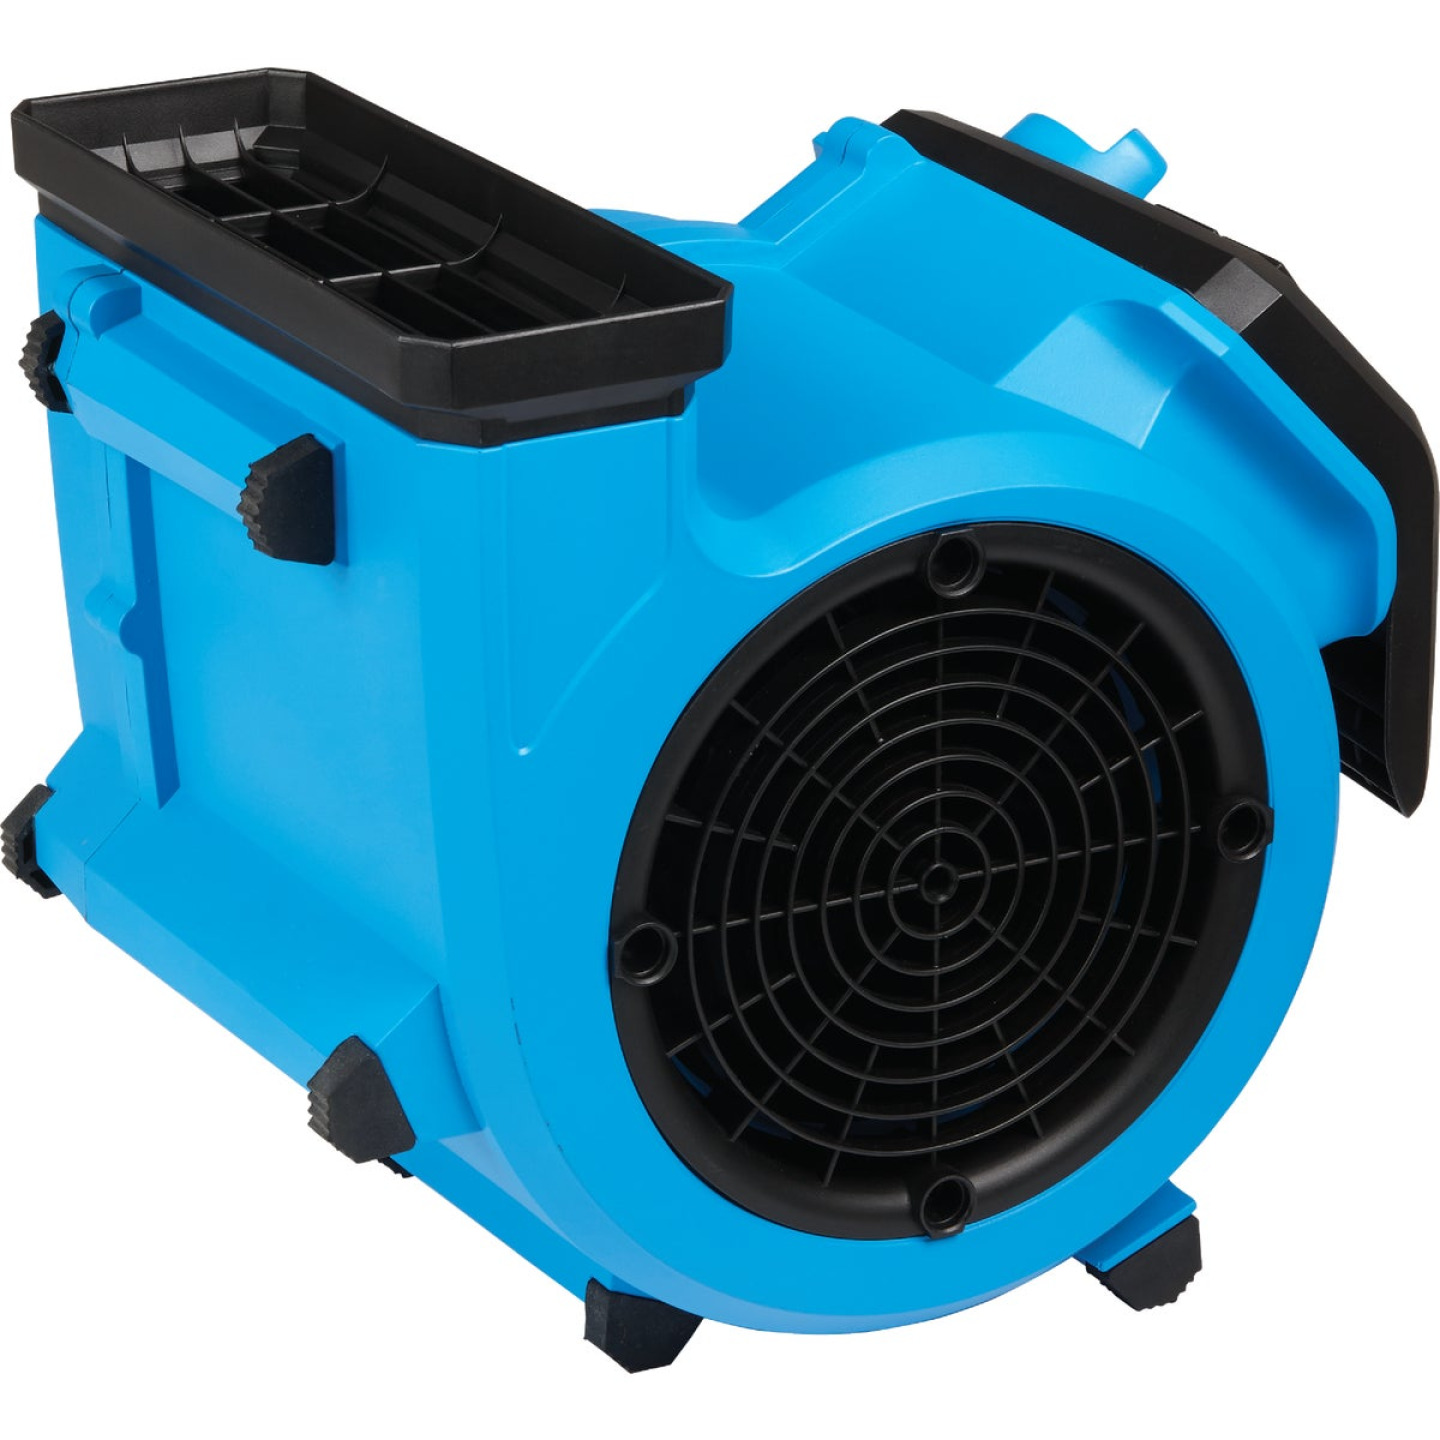 Channellock 3-Speed 3-Position 550 CFM Air Mover Blower Fan Image 8